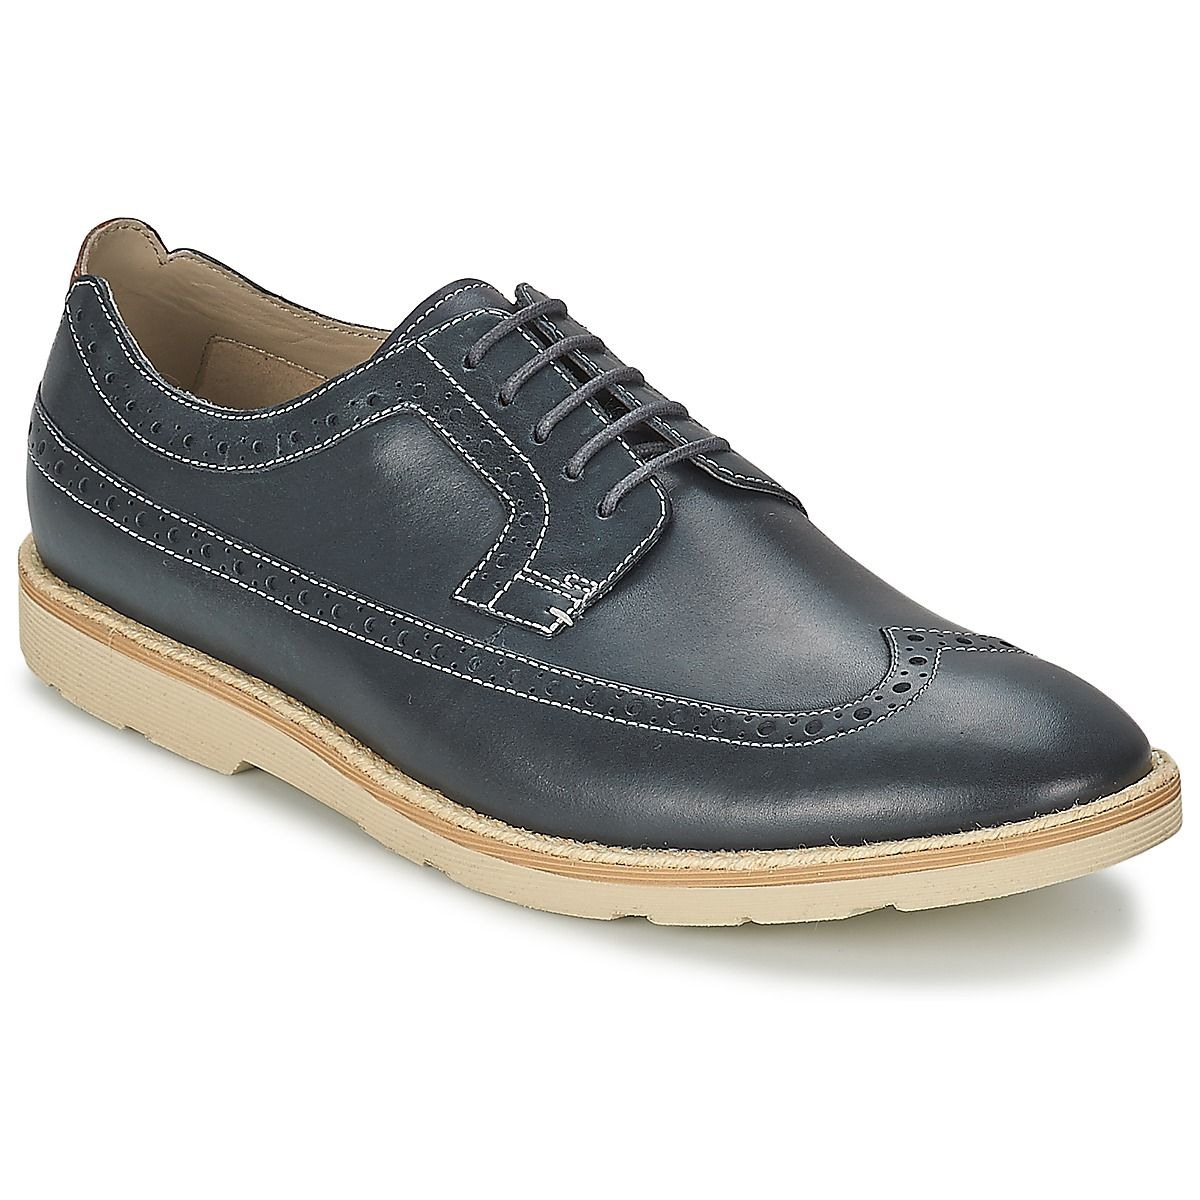 Durability and an urban style are what await with the GAMBESON LIMIT Blue #ClarksMensShoes, save 20% on these shoes with a #leather upper and a synthetic outer sole - Price £ 70.40